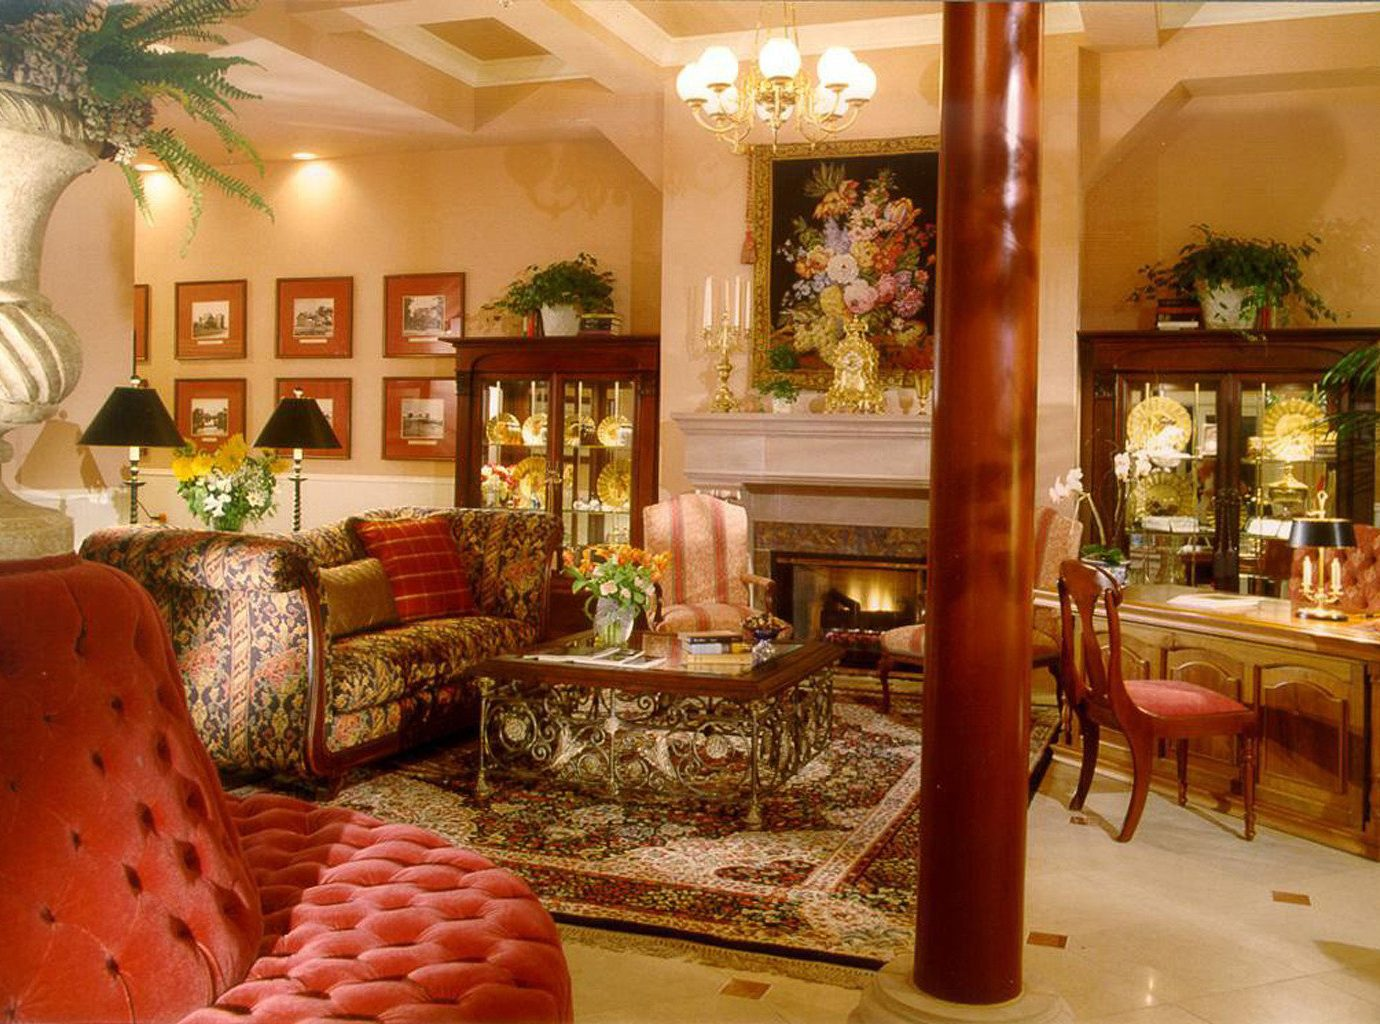 Cultural Historic Landmarks Lobby Lounge Romance Romantic Wine-Tasting living room chair home mansion